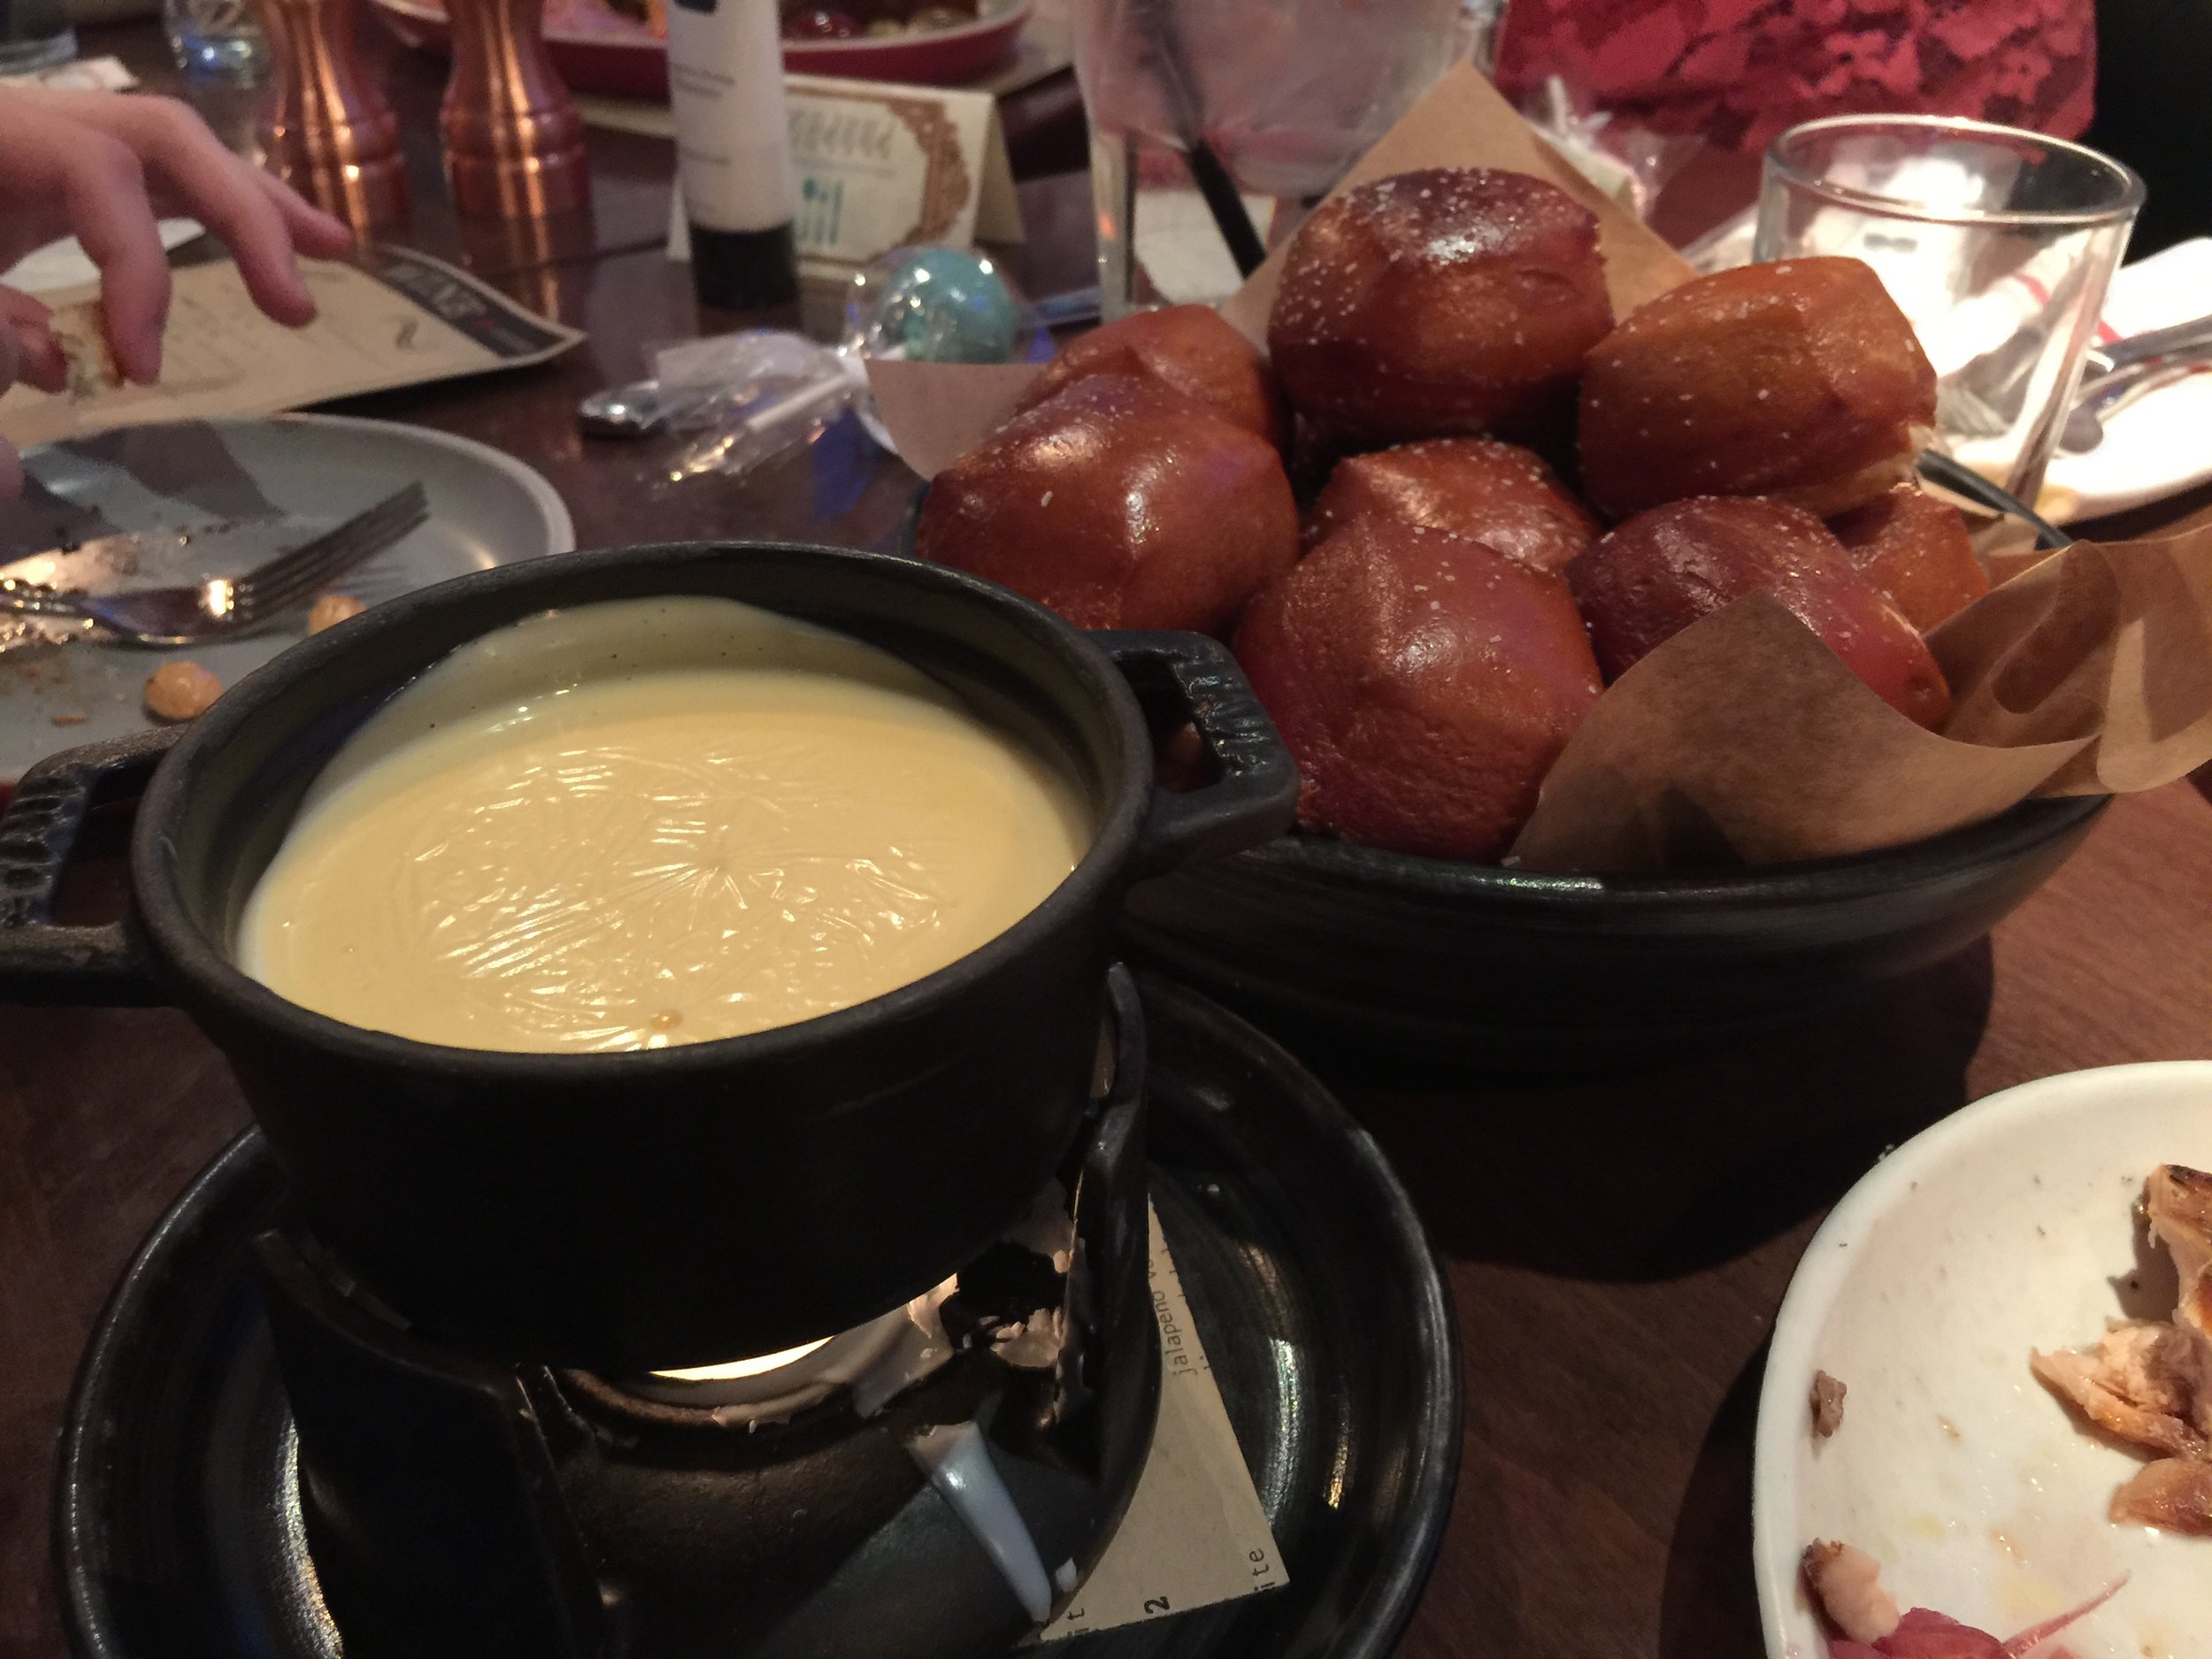 Soft Pretzels & Provolone Fondue   Carbs and cheese are the best combination with this snack ;) With the softness of the bread and the gooeyness of the cheese, this app was a hit at our event!